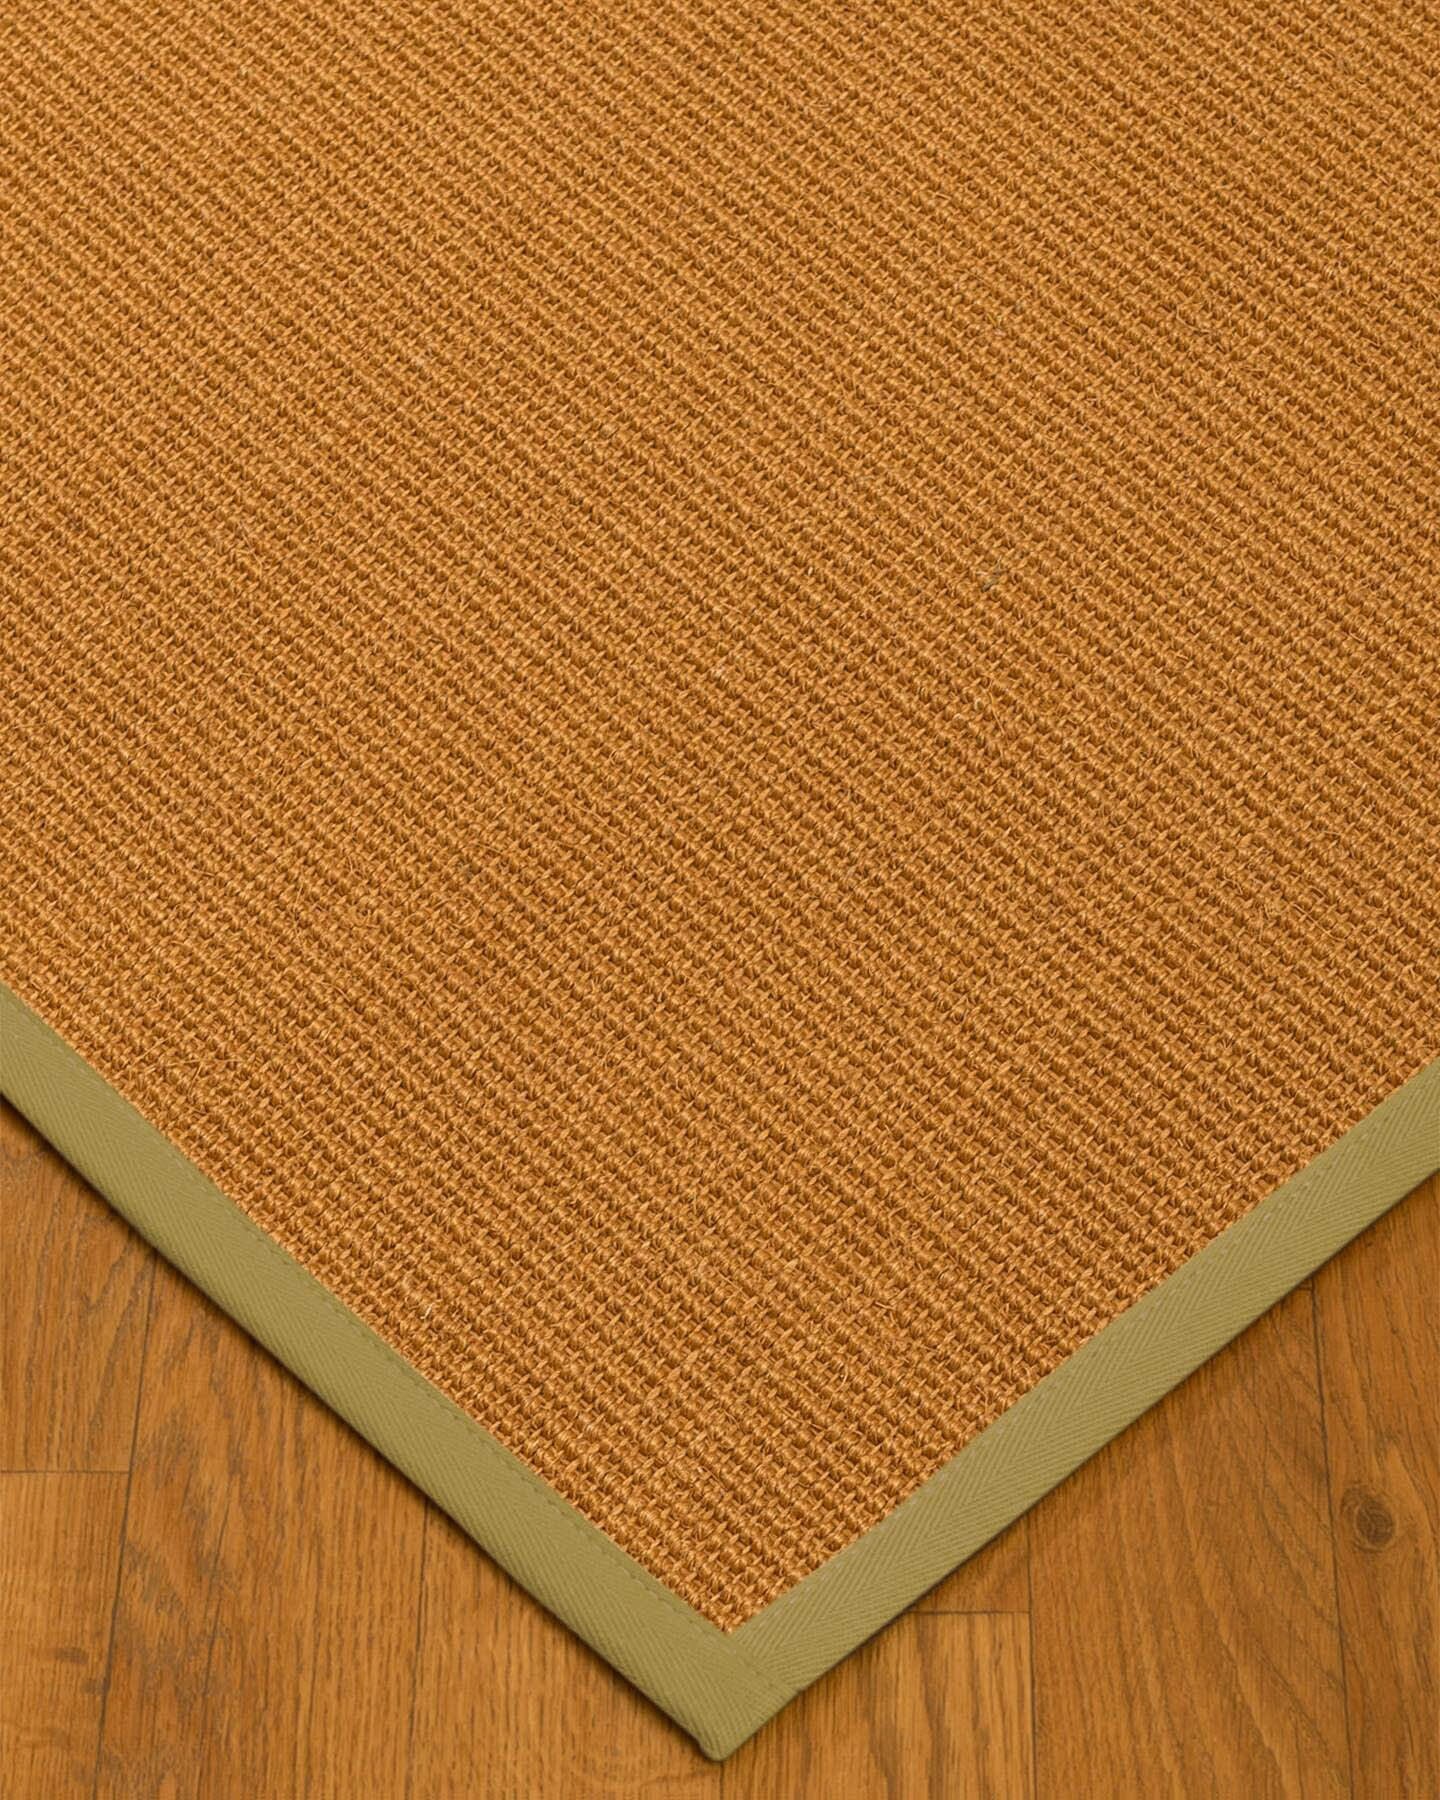 Kelty Border Hand-Woven Brown/Olive Area Rug Rug Size: Rectangle 3' x 5'